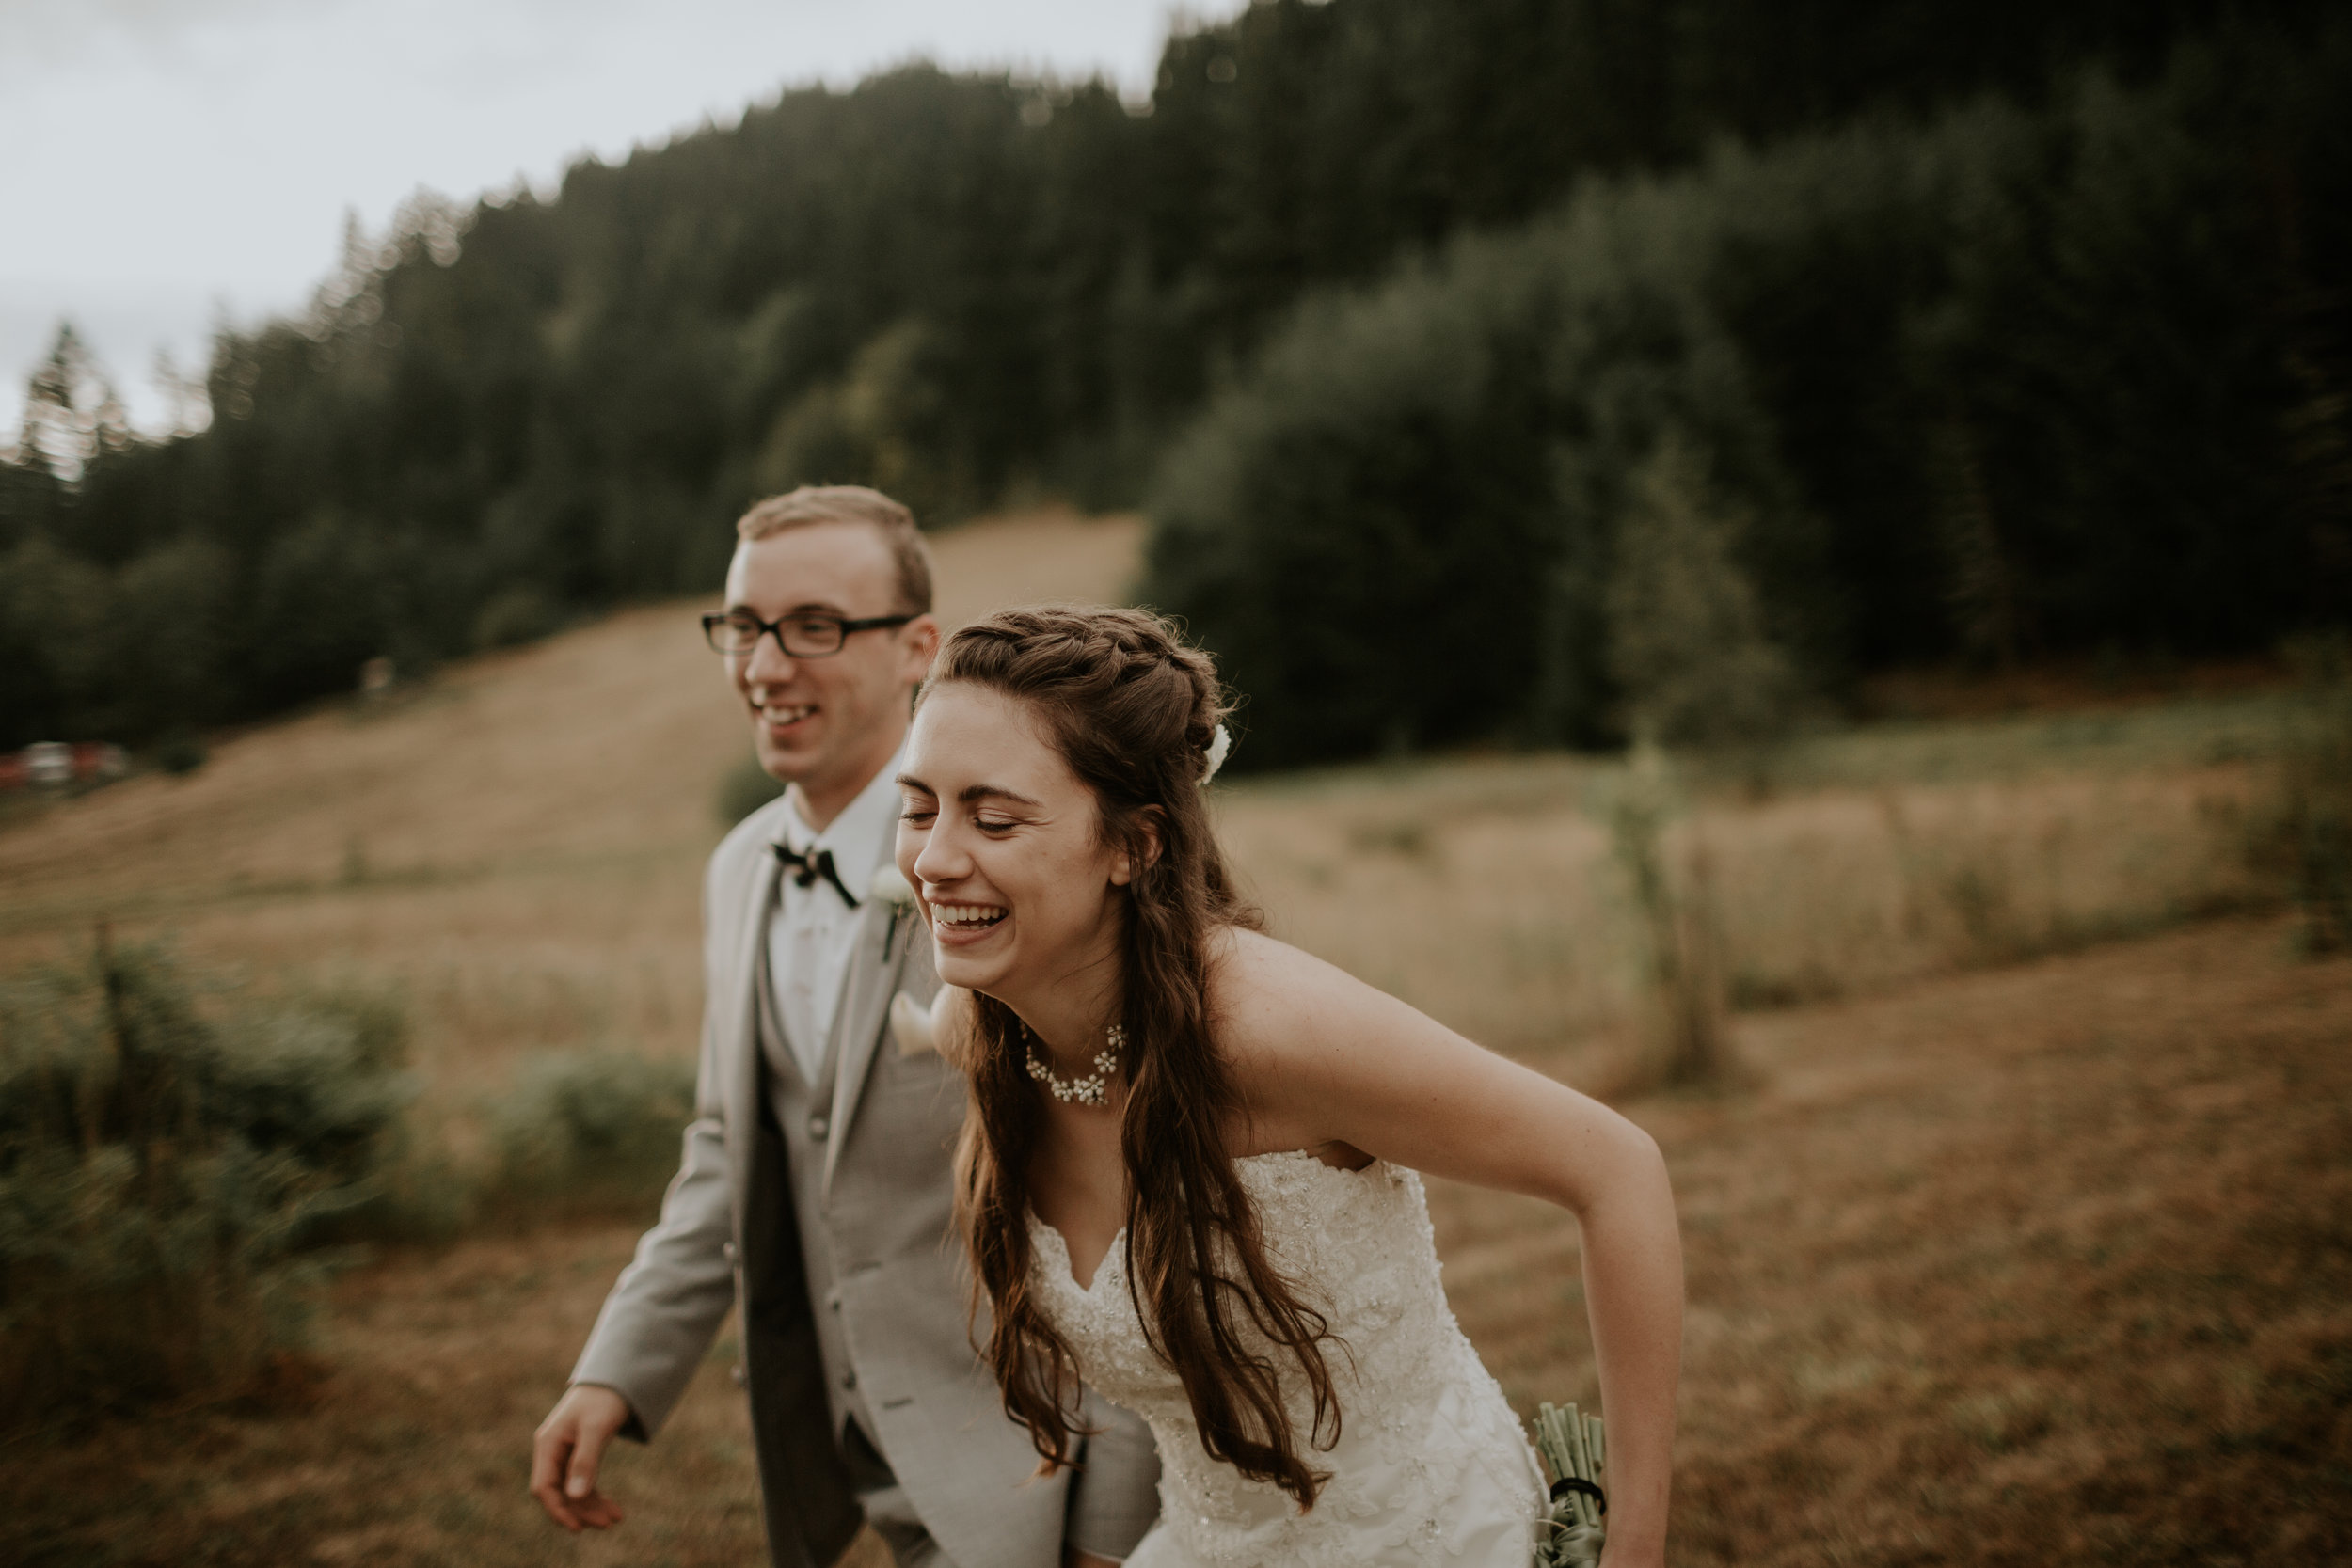 Port-Angeles-elopement-wedding-pnw-olympic-peninsula-photographer-portrait-kayladawnphoto-kayla-dawn-photography-olympic-national-park-190.jpg